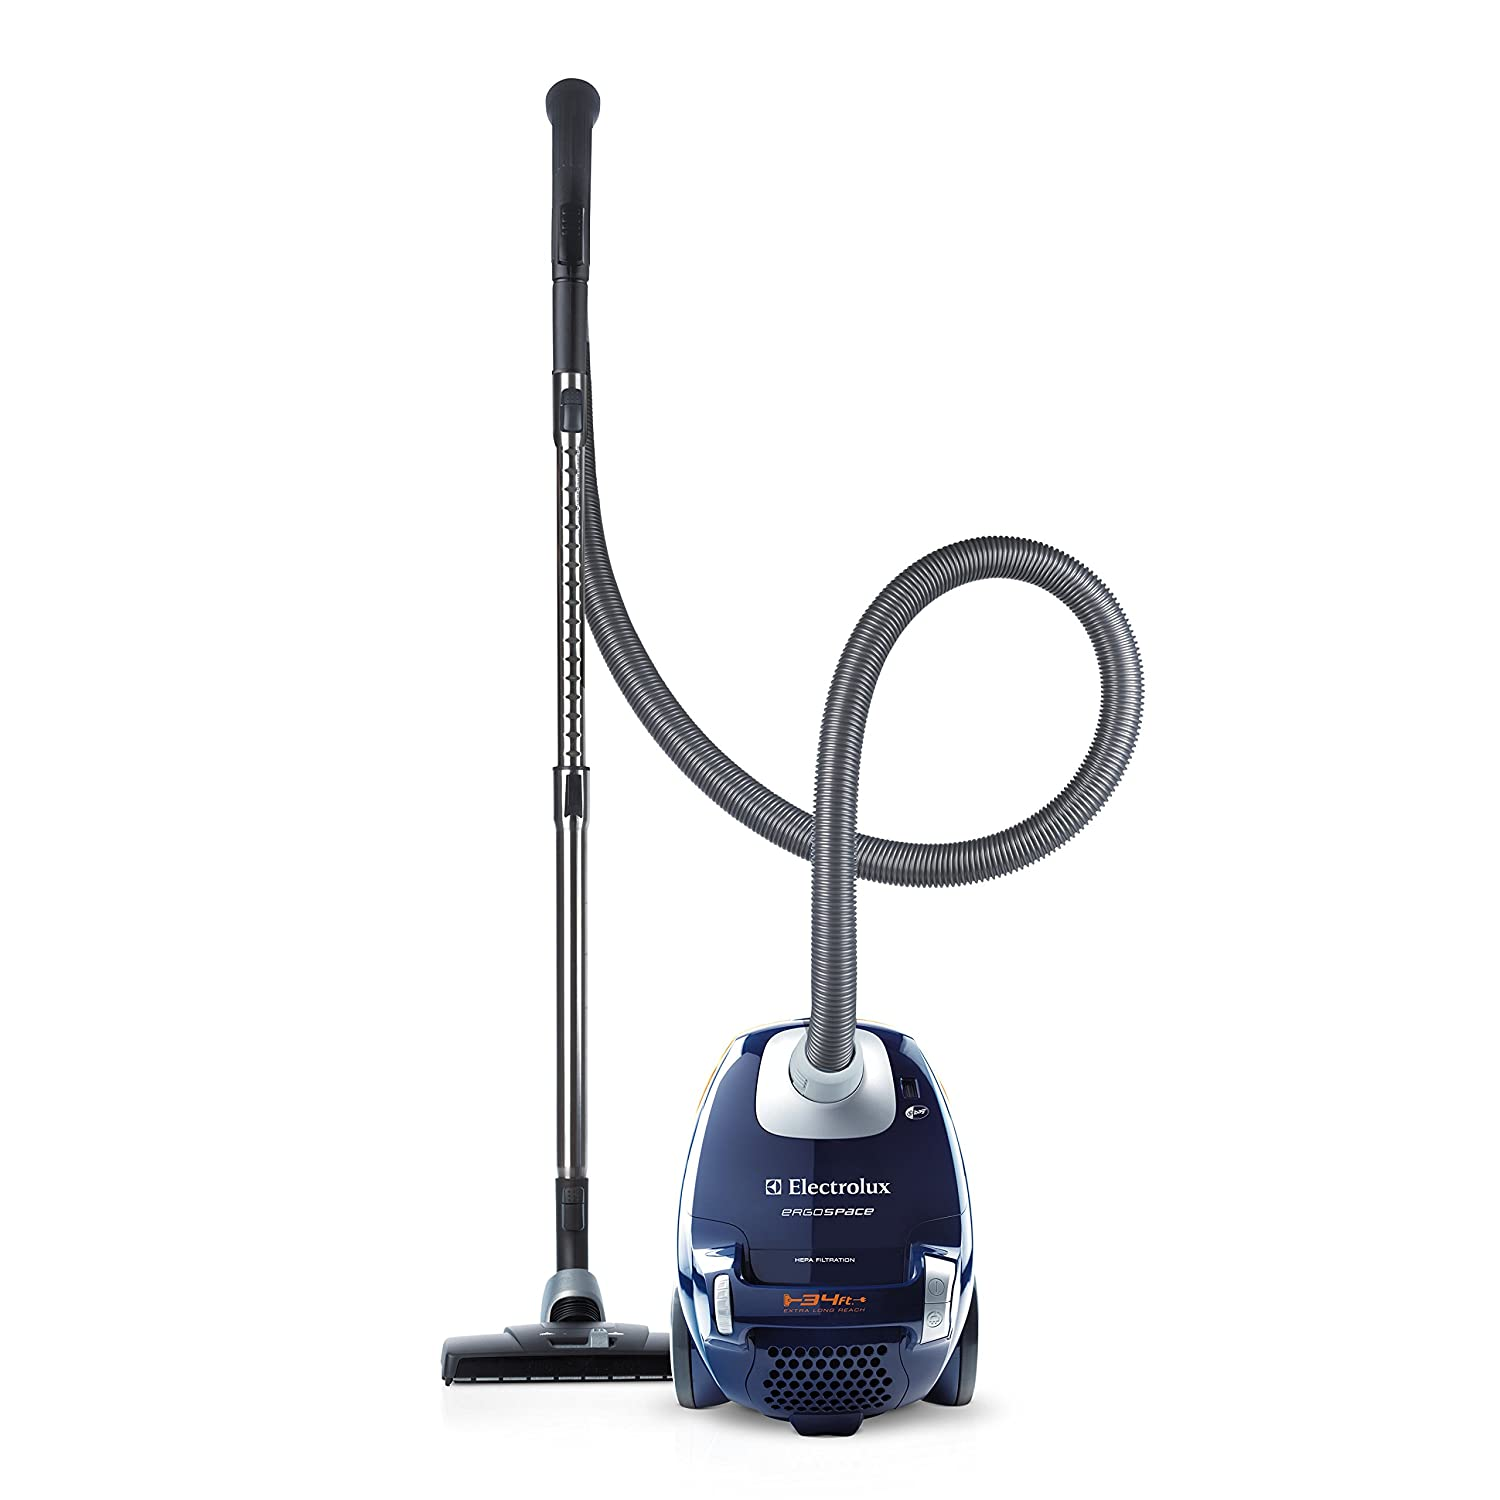 Top 10 Best Canister Vacuum Cleaner (2020 Reviews & Buying Guide) 10